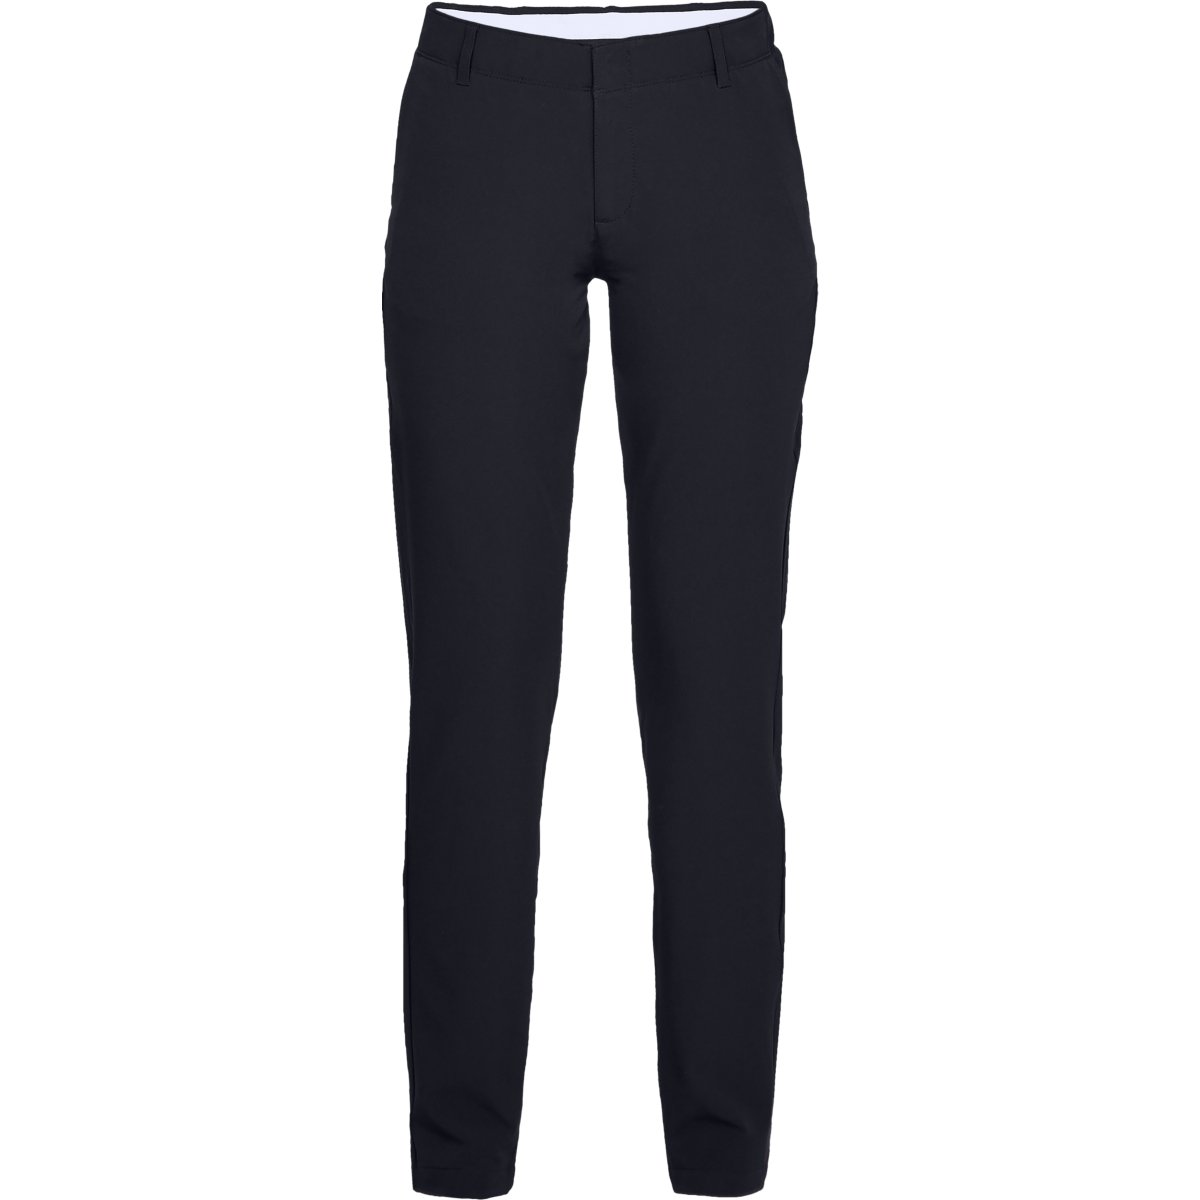 Under Armour Links Pant Black - 6